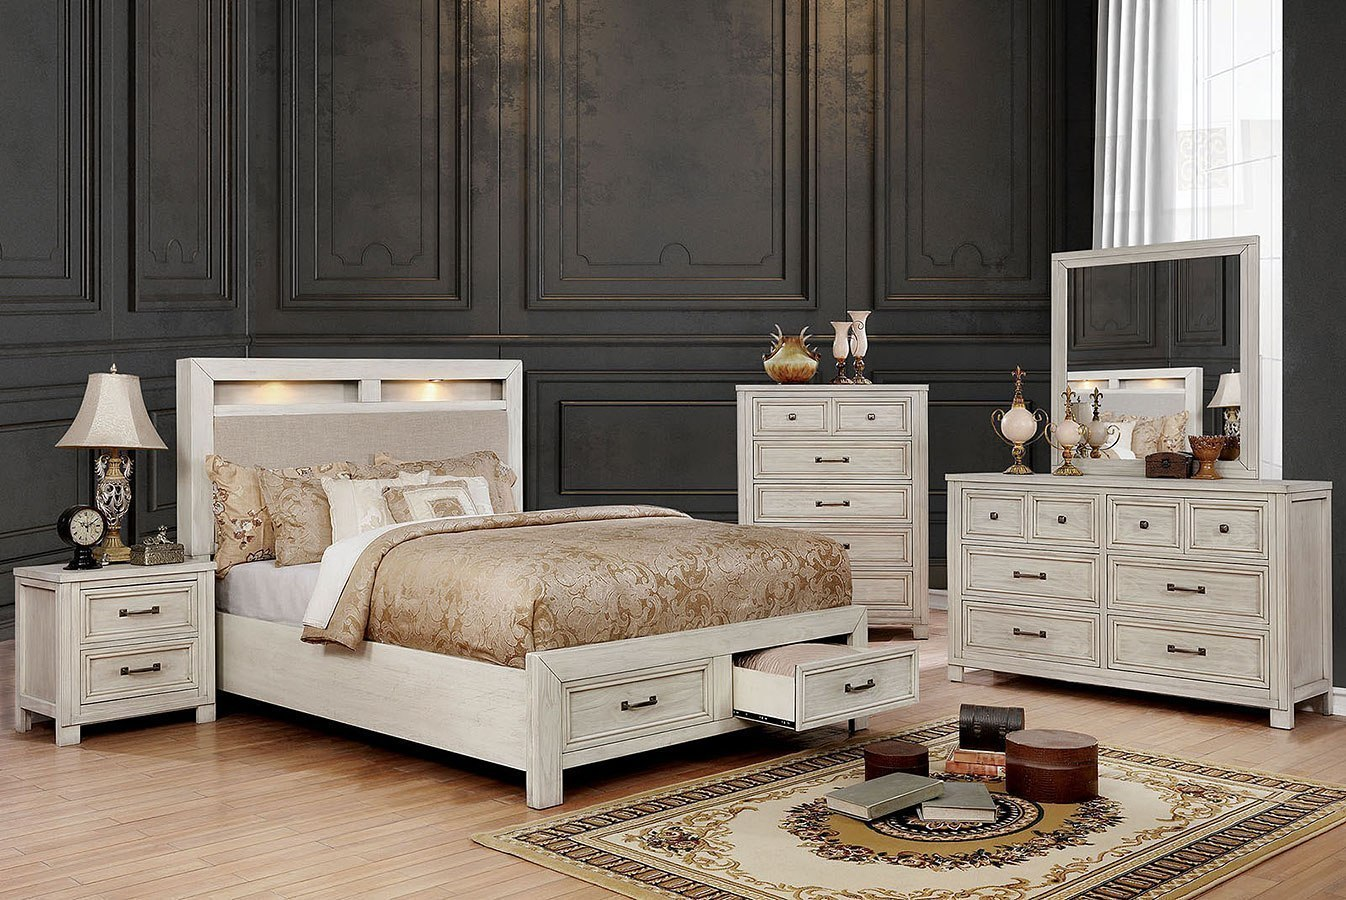 Tywyn Storage Bedroom Set (Antique White)